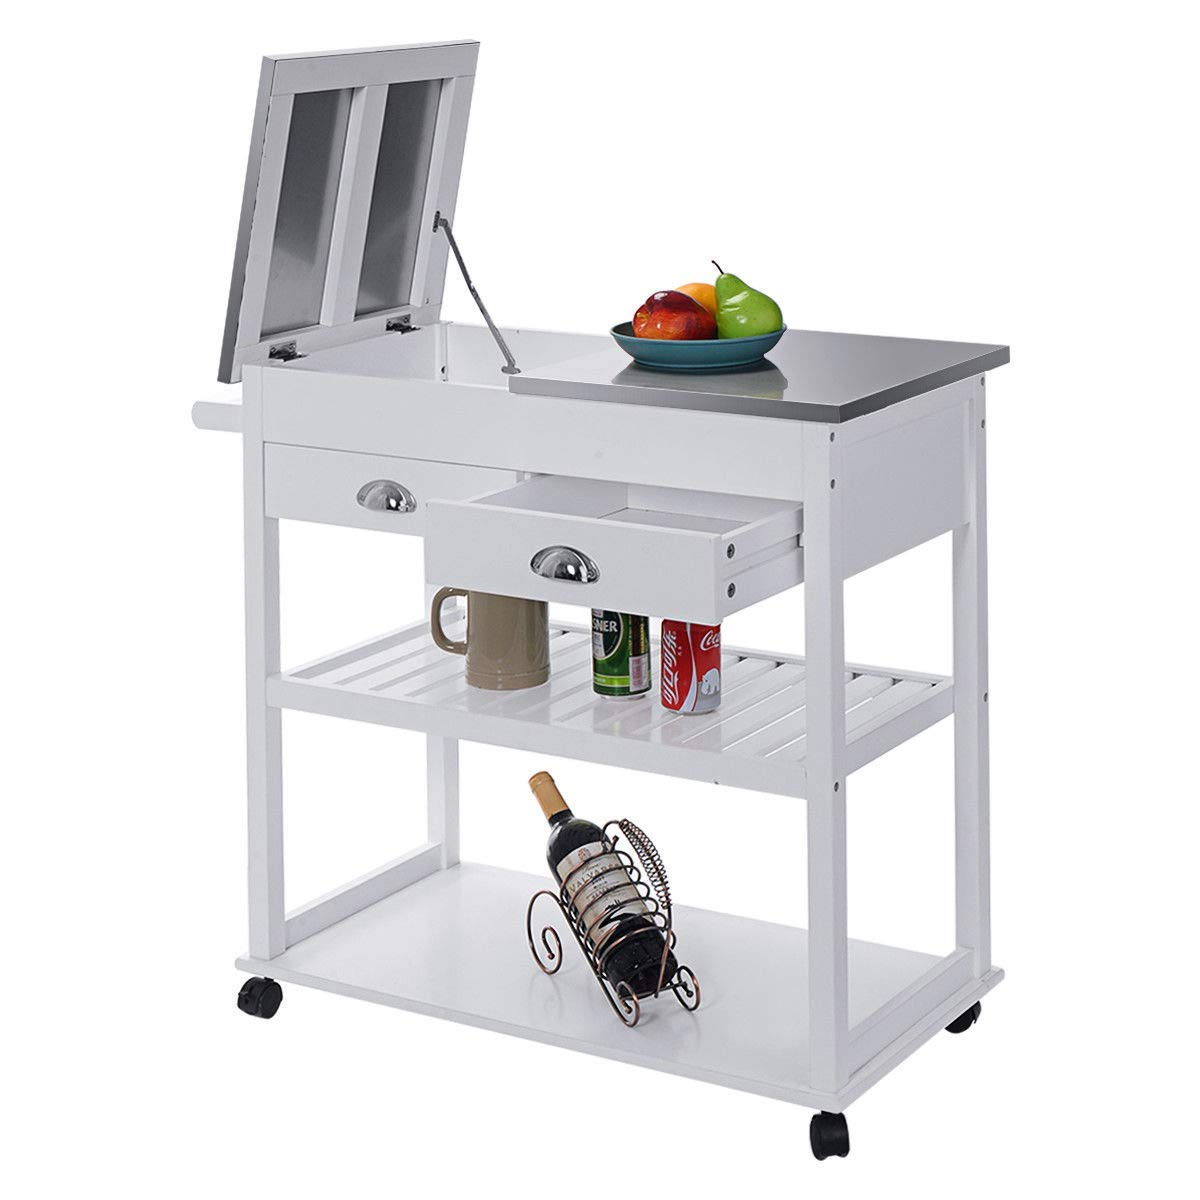 Cypressshop White Kitchen Rolling Trolley Carts Stainless Steel-Flip Top Kitchen Island with Drawers & Casters Home Cooking Tools Things Storage Organizer Furniture